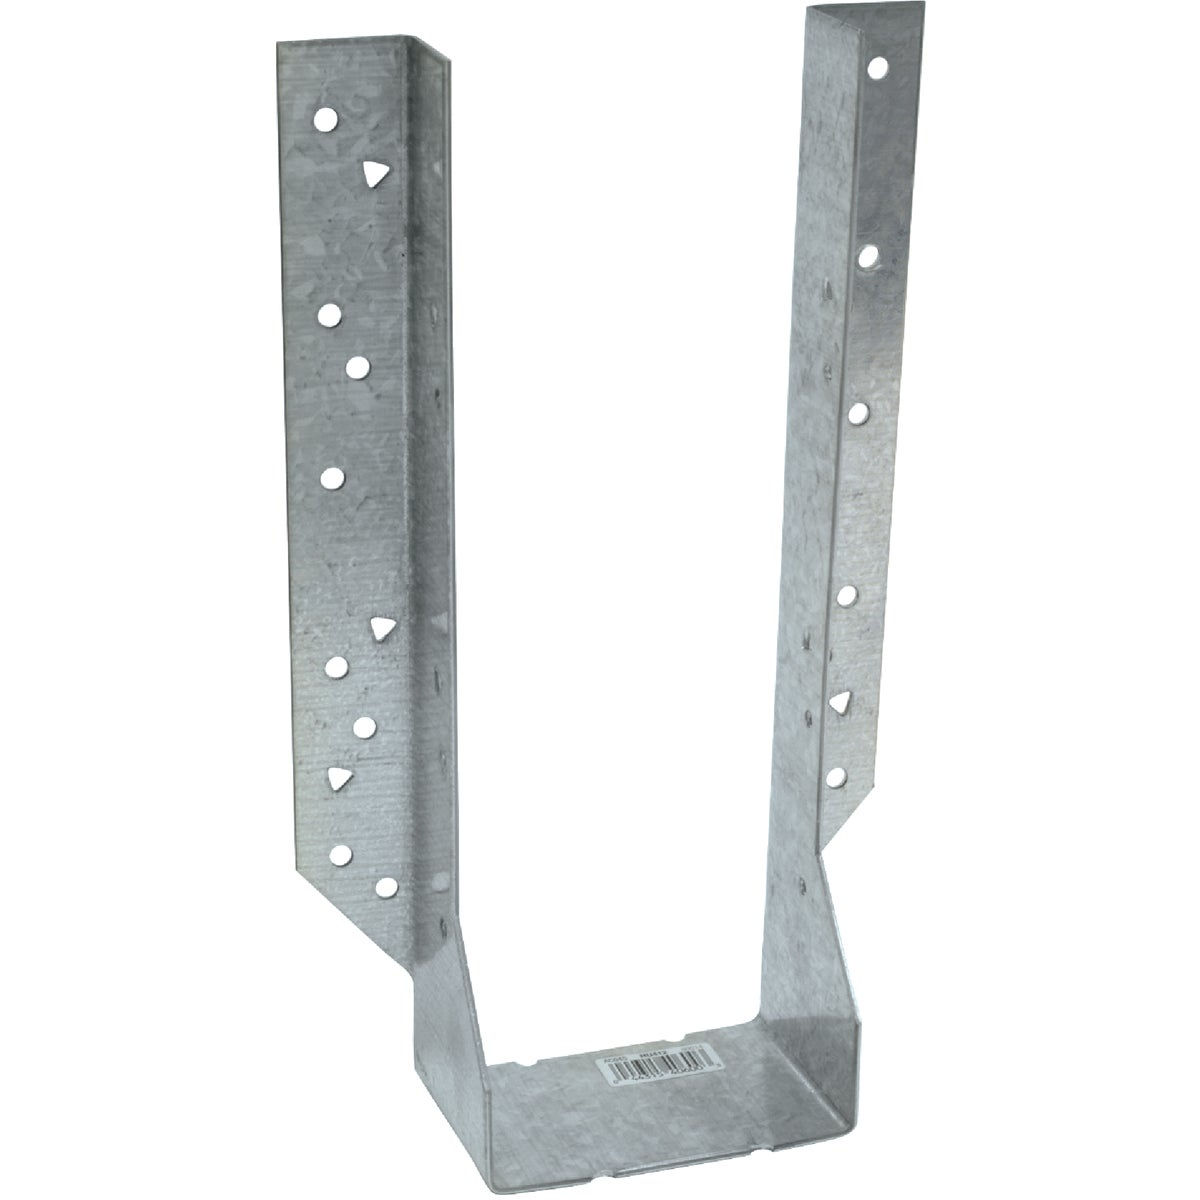 4X12 JOIST HANGER - HU412 by Simpson Strong Tie